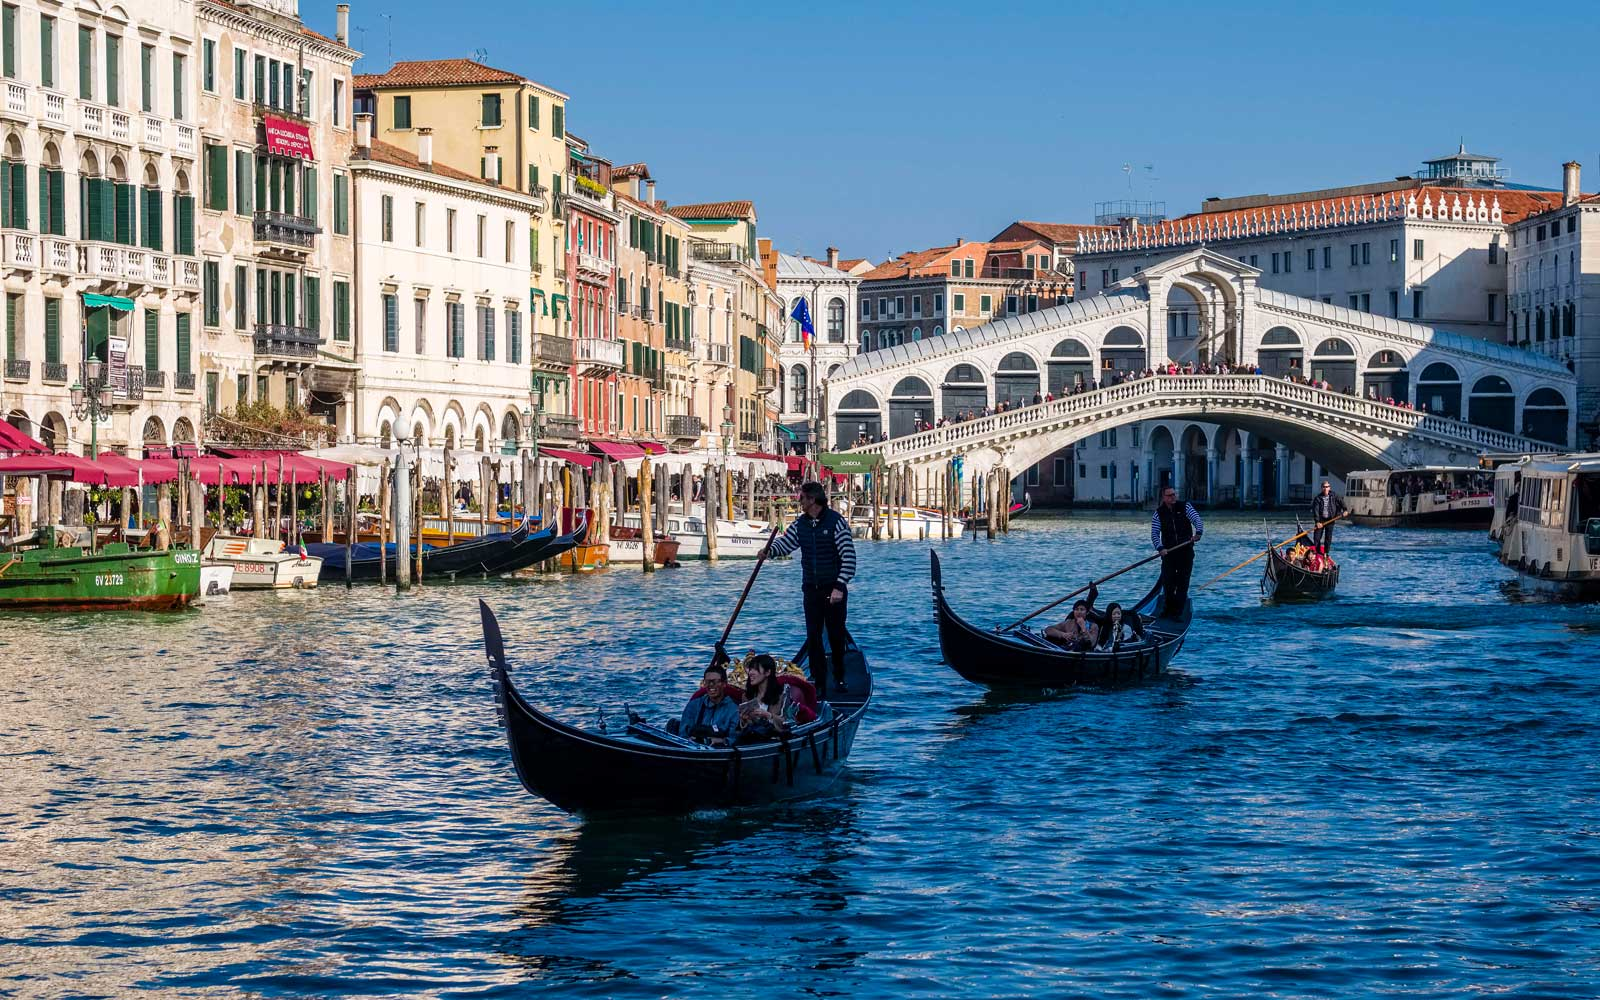 Tourists Now Have to Pay an Entrance Fee Before Setting Foot in Venice